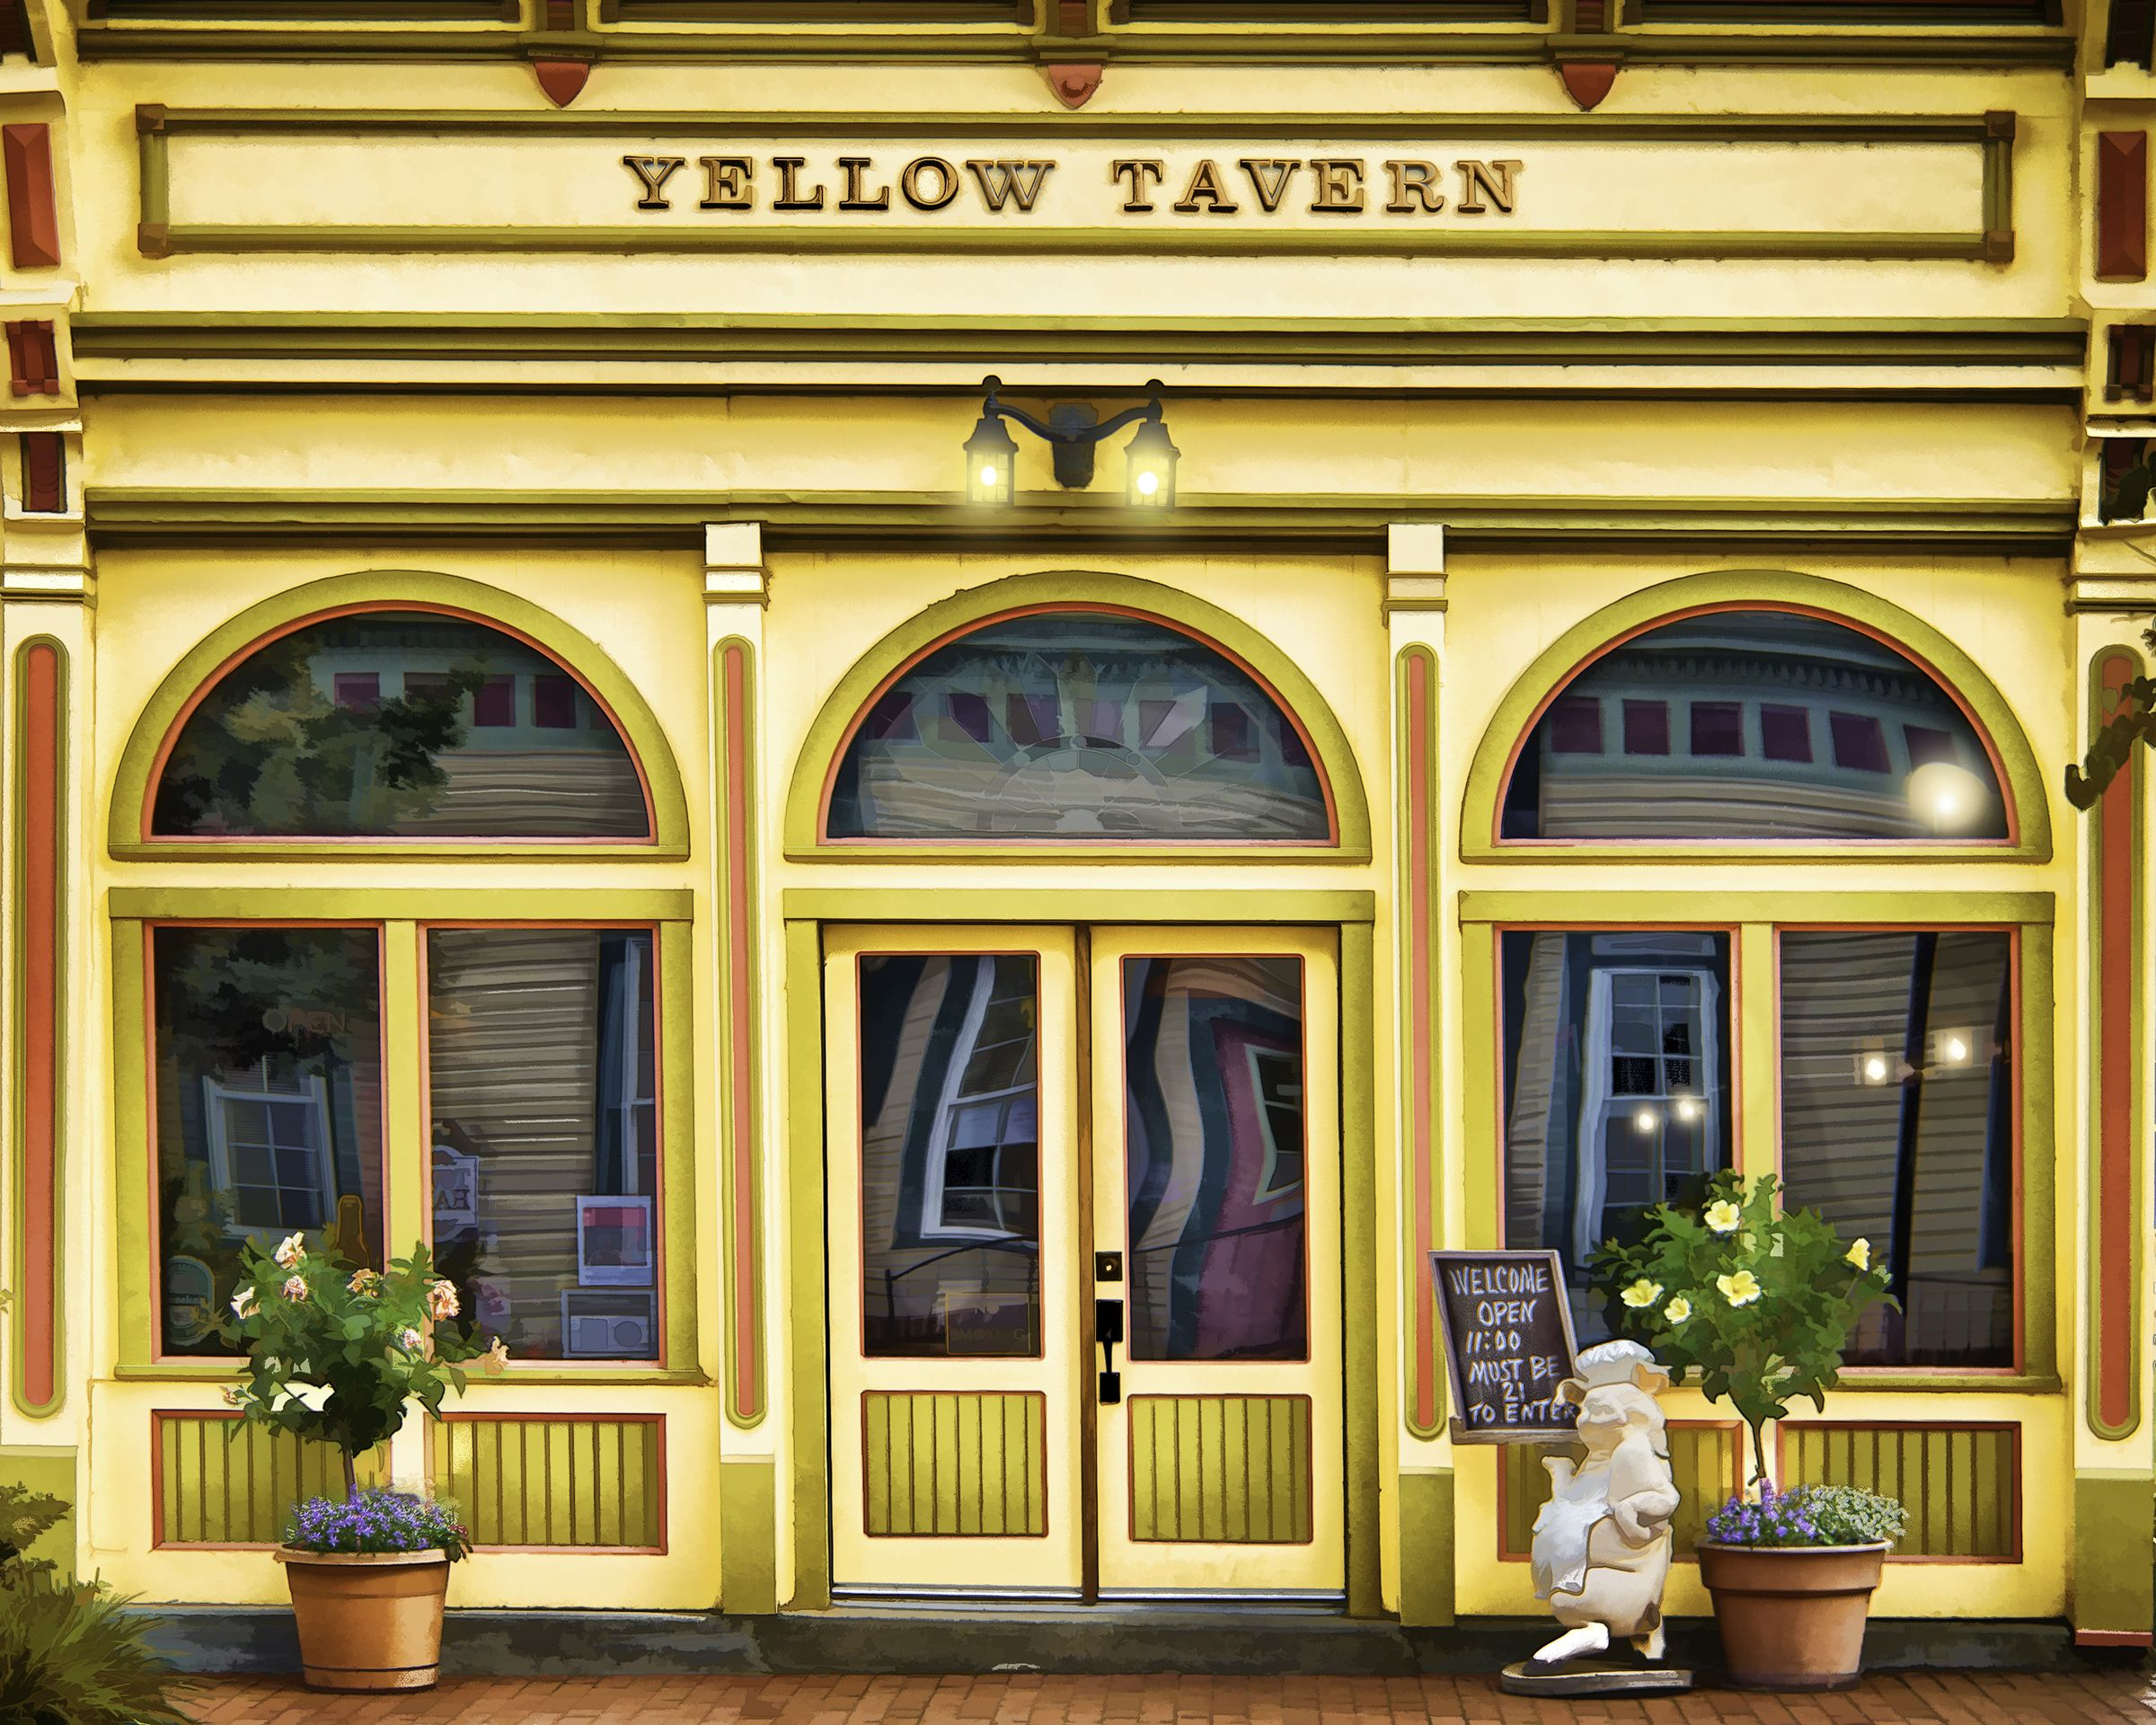 yellow tavern harmony8x10.jpg